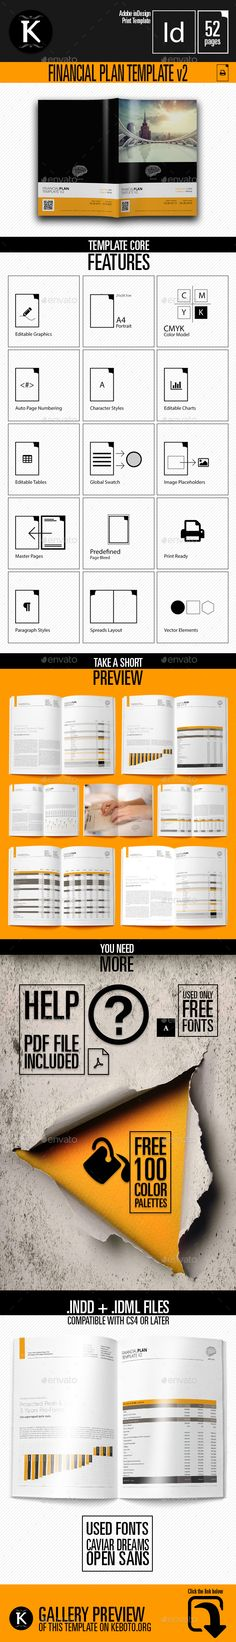 THE Business Plan - Multipurpose Digital Template Business